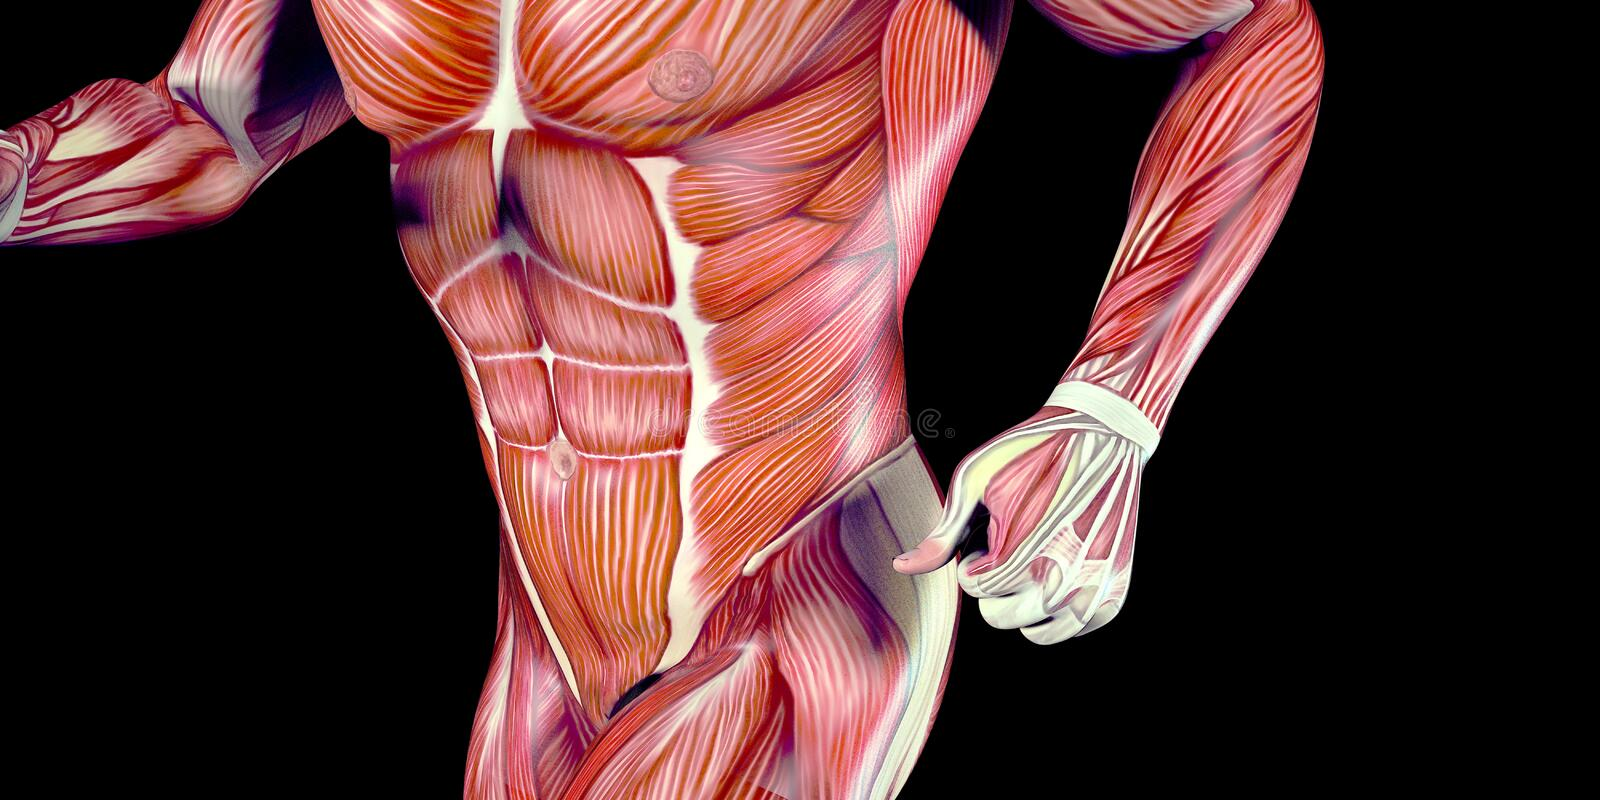 Human Male Body Anatomy Illustration With Visible Muscles Stock ...